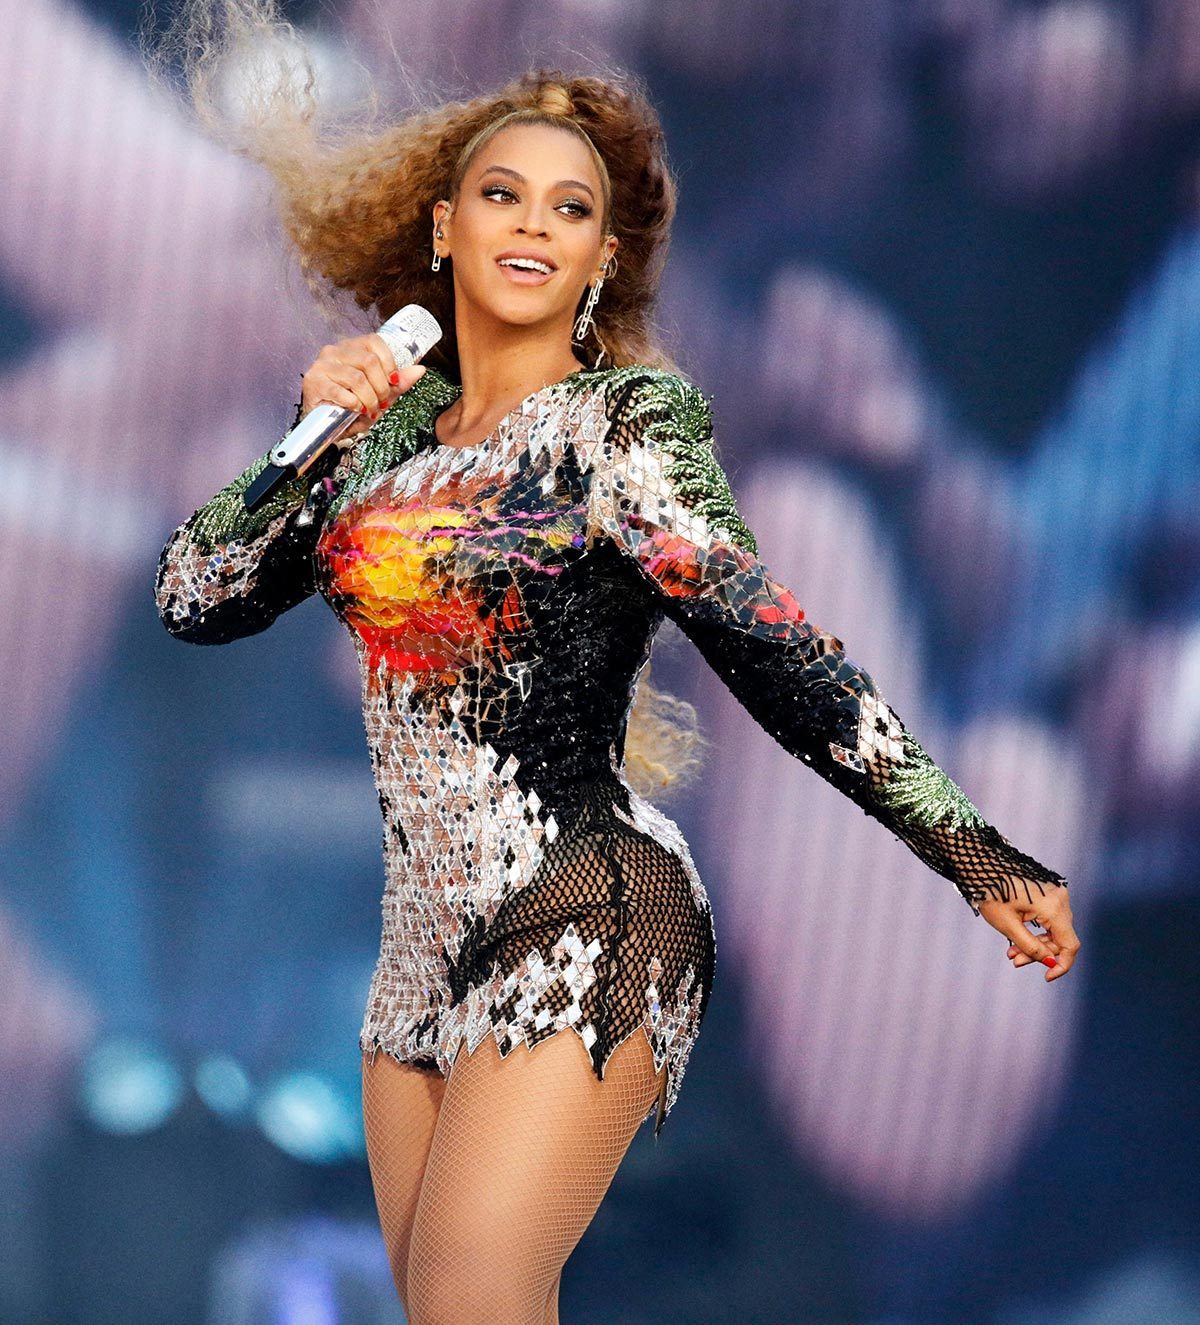 Beyonce and Jay-Z in concert, 'On The Run II Tour', Cologne, Germany - 03 Jul 2018